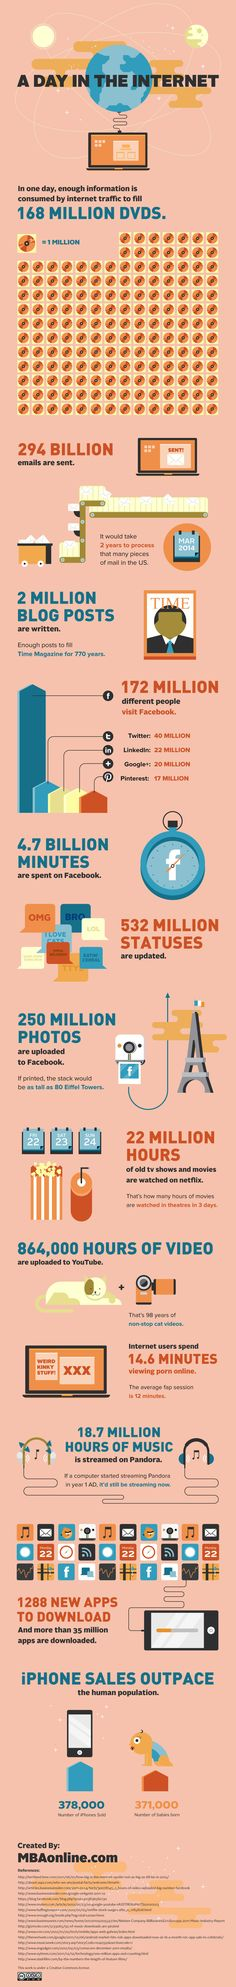 A Day in the Life of the Internet Infographic. Why they don't mention is that only about 1% of this stuff is useful...